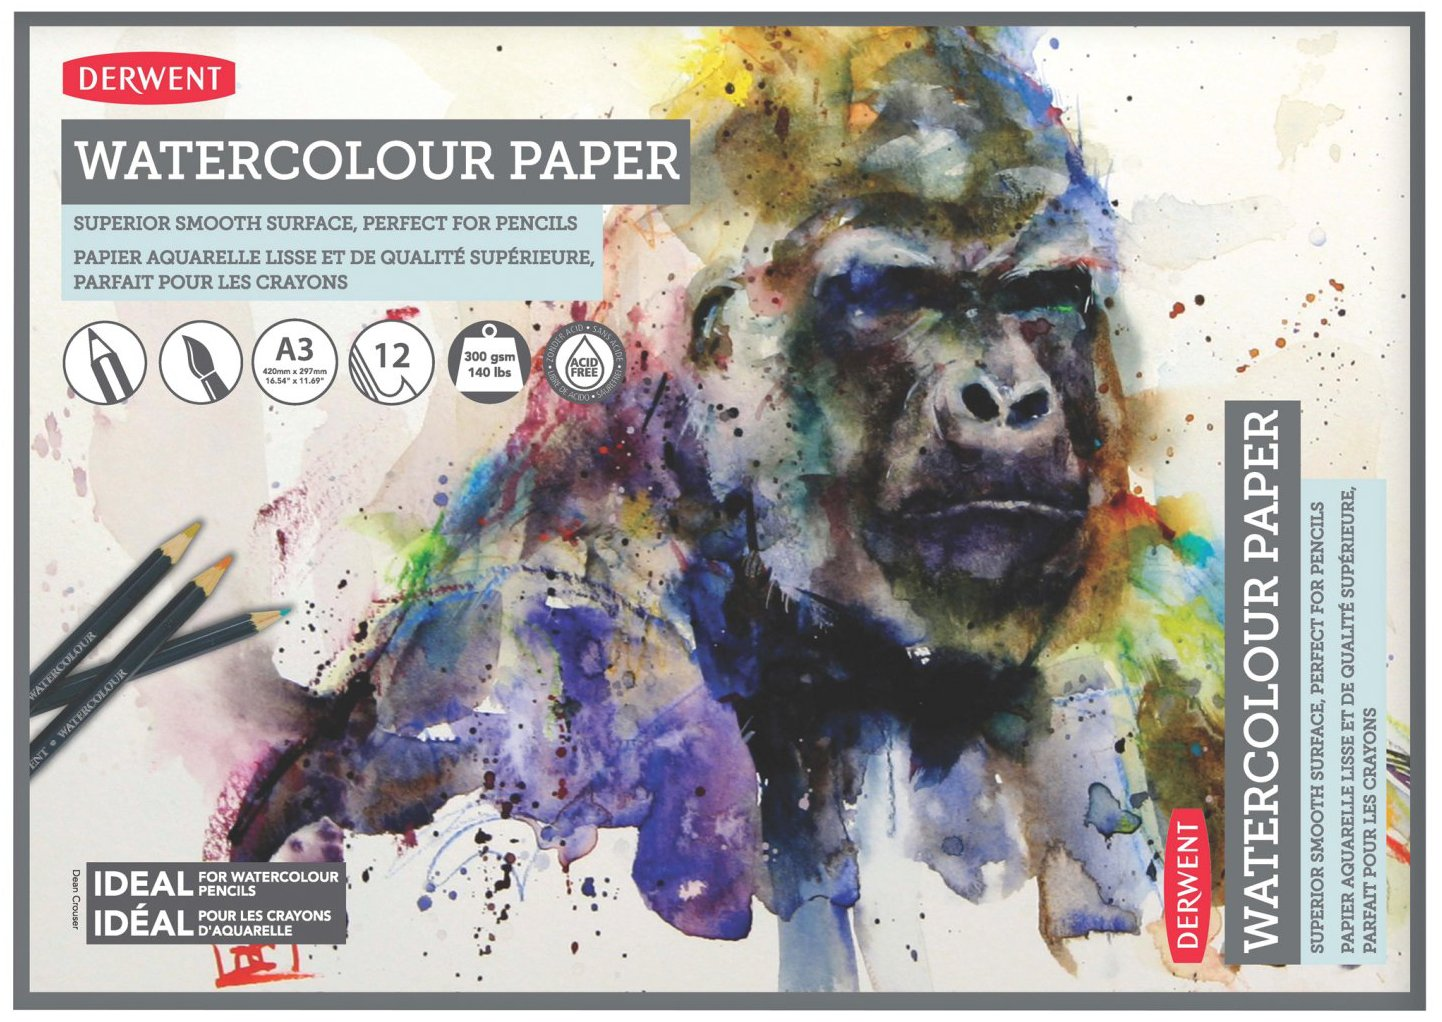 Derwent Watercolor Paper Pad, A3, 16.54 x 11.69 Inches Sheet Size, 12 Sheets (2301971)